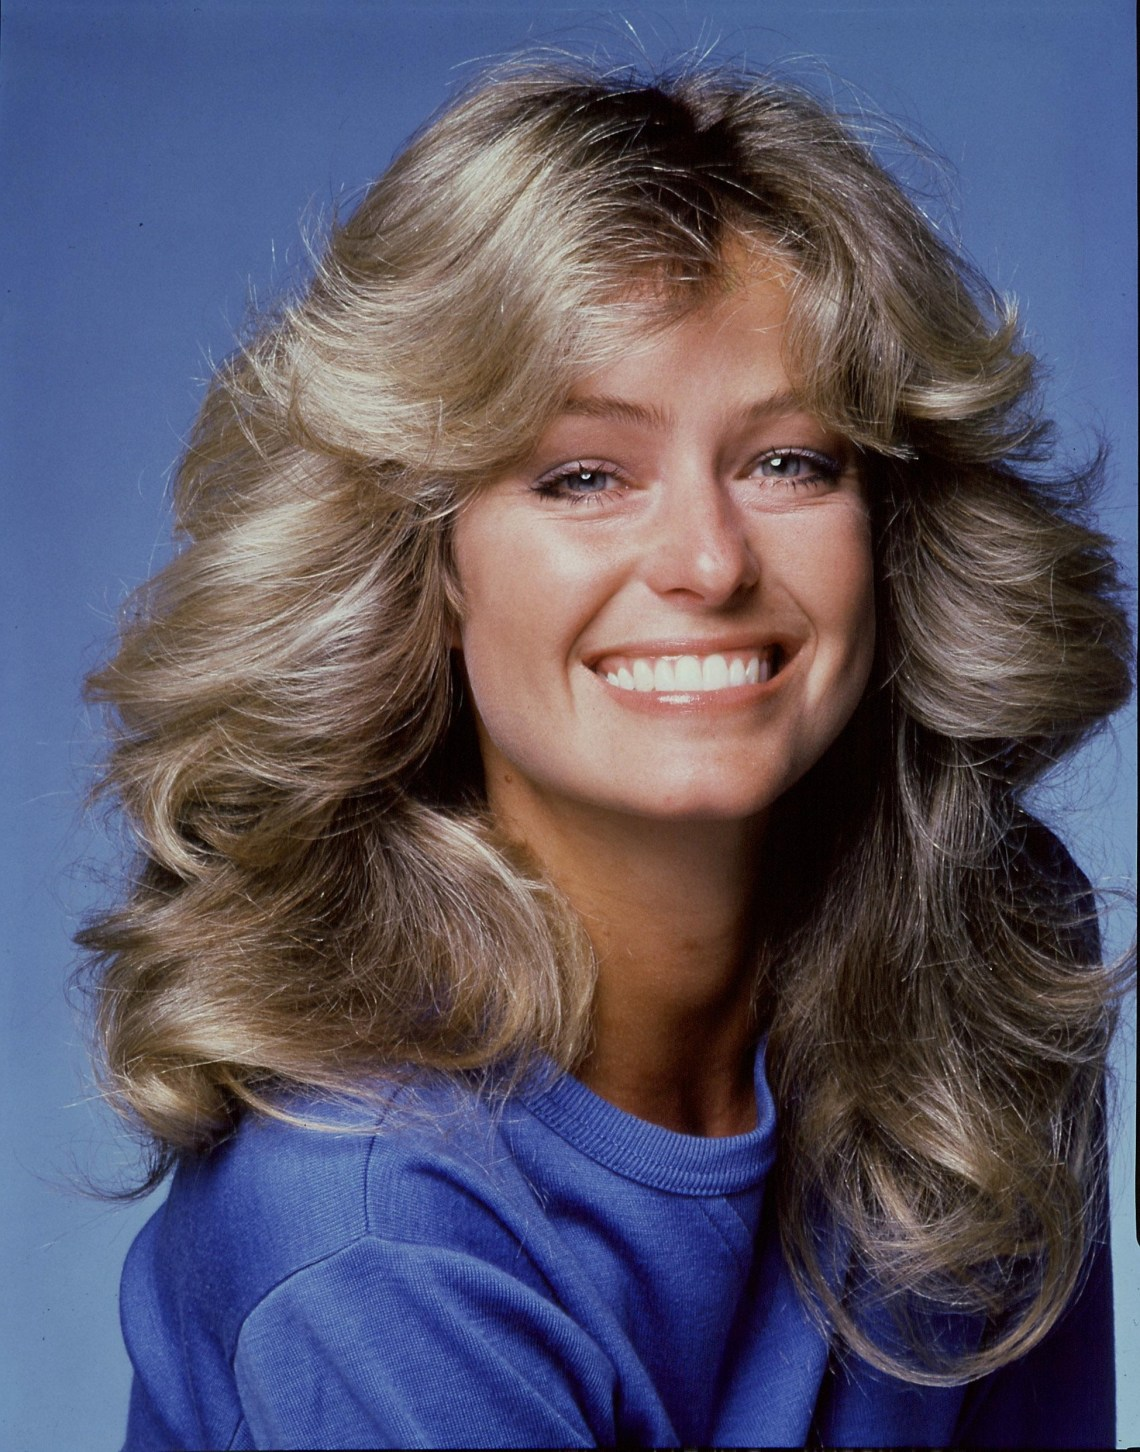 70S Hairstyles: 18 Iconic Hair Trends Making A Comeback 20+ Stylish 70S Medium Hairstyles